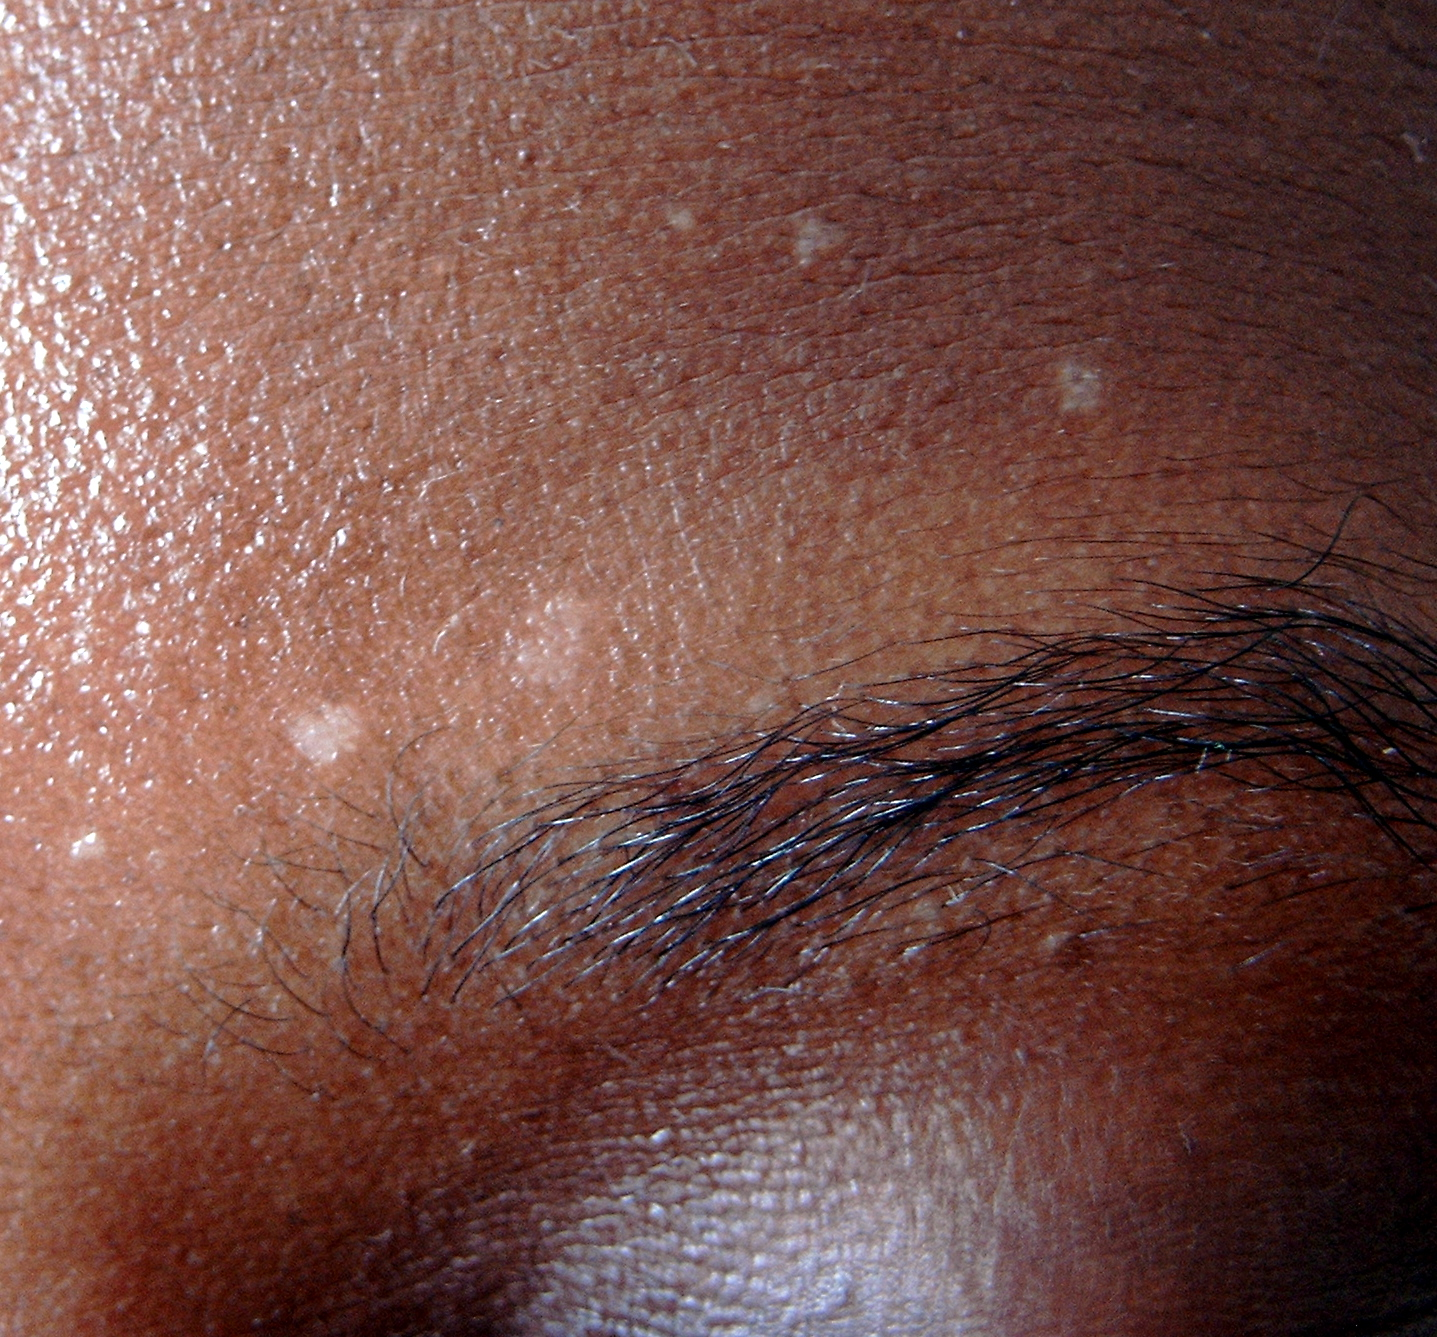 topical steroids used for eczema